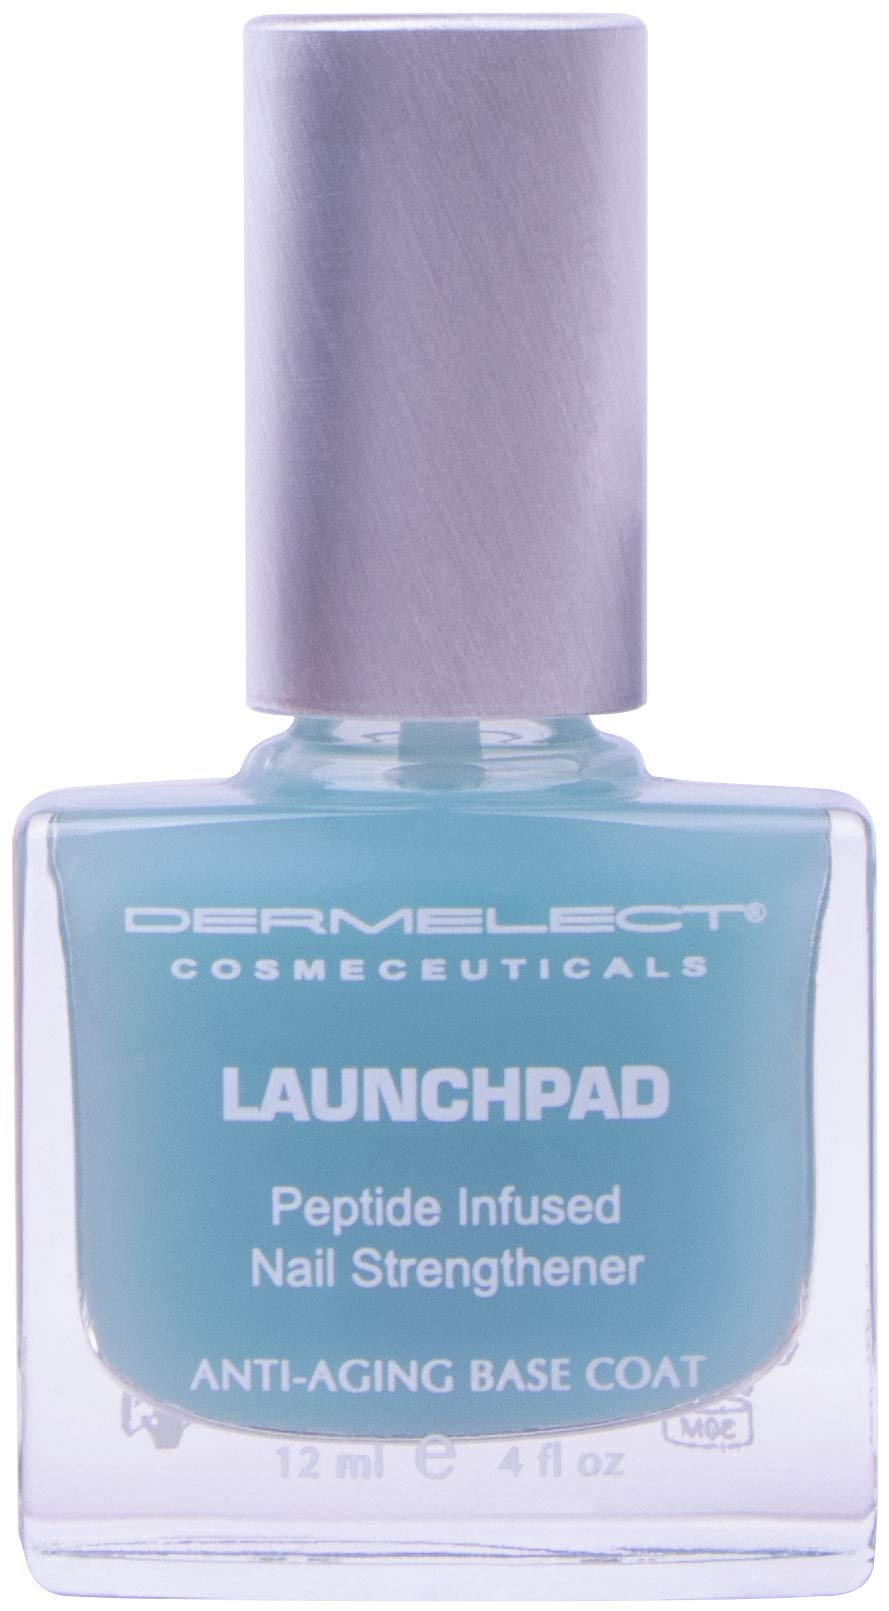 Dermelect Cosmeceuticals Launchpad Nail Strengthener - 0.4 oz by Dermelect